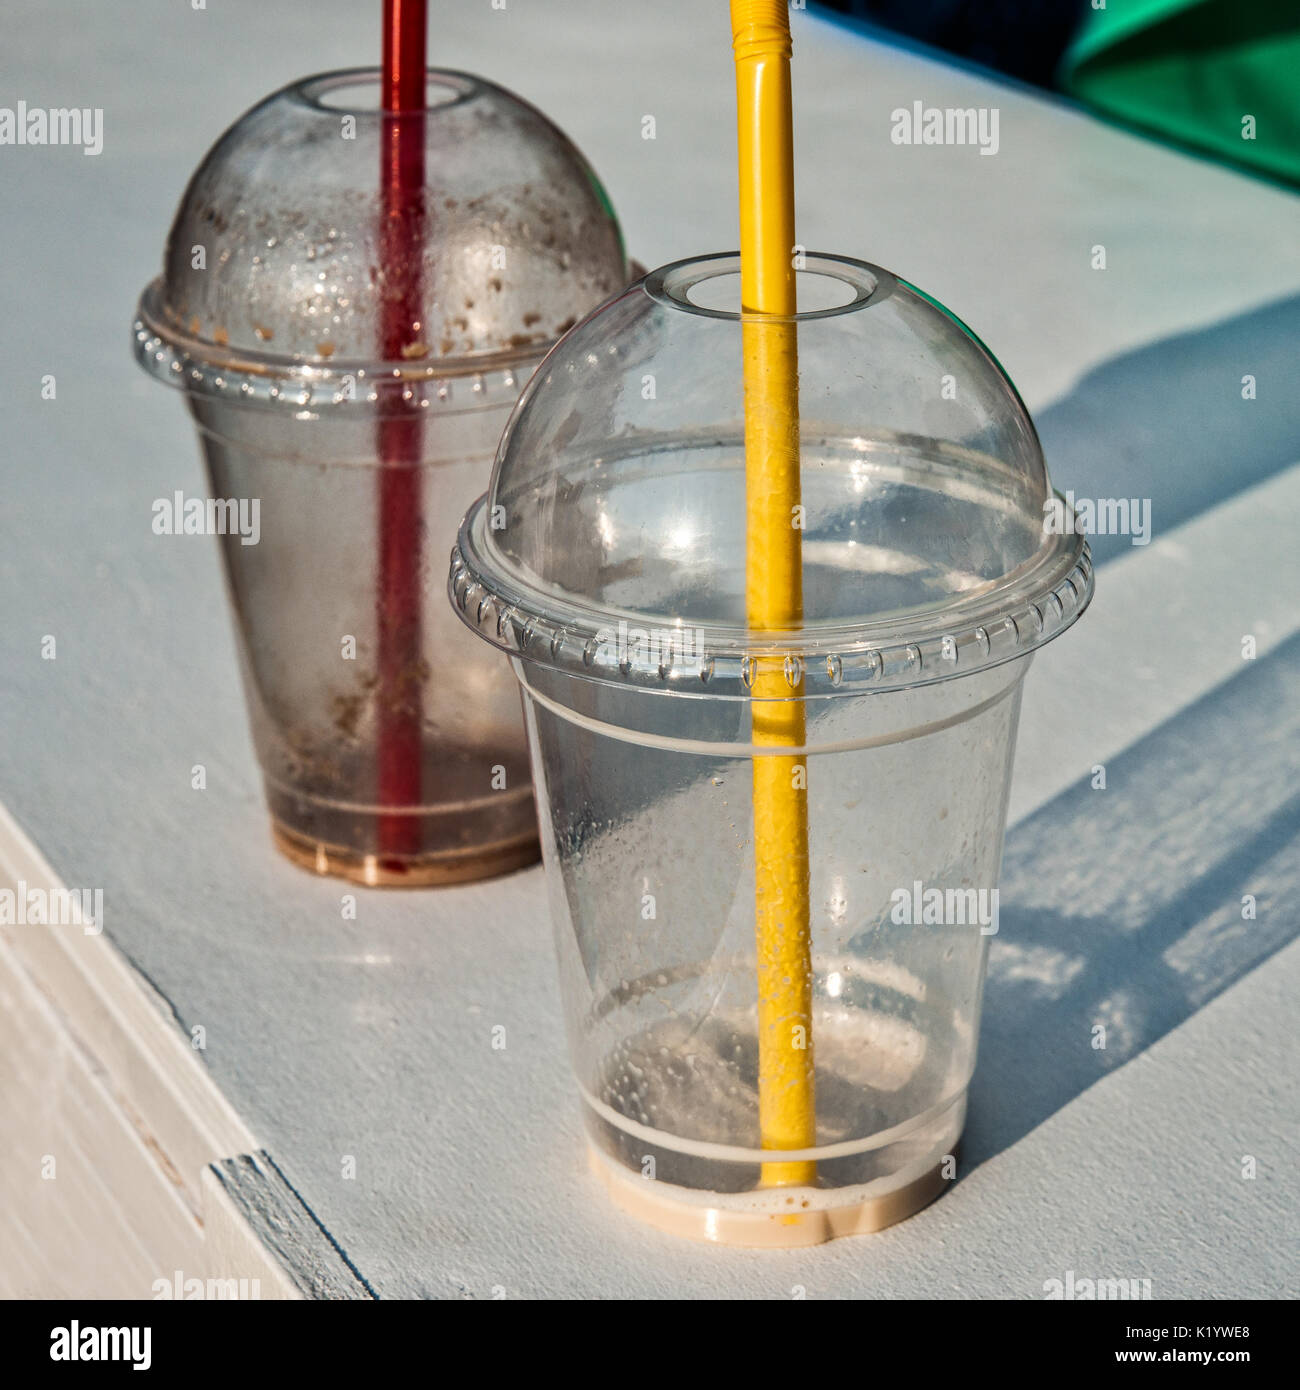 Empty plastic glasses with red and yellow straws stand on a white deck. Some green cloth and reflection of blue - Stock Image